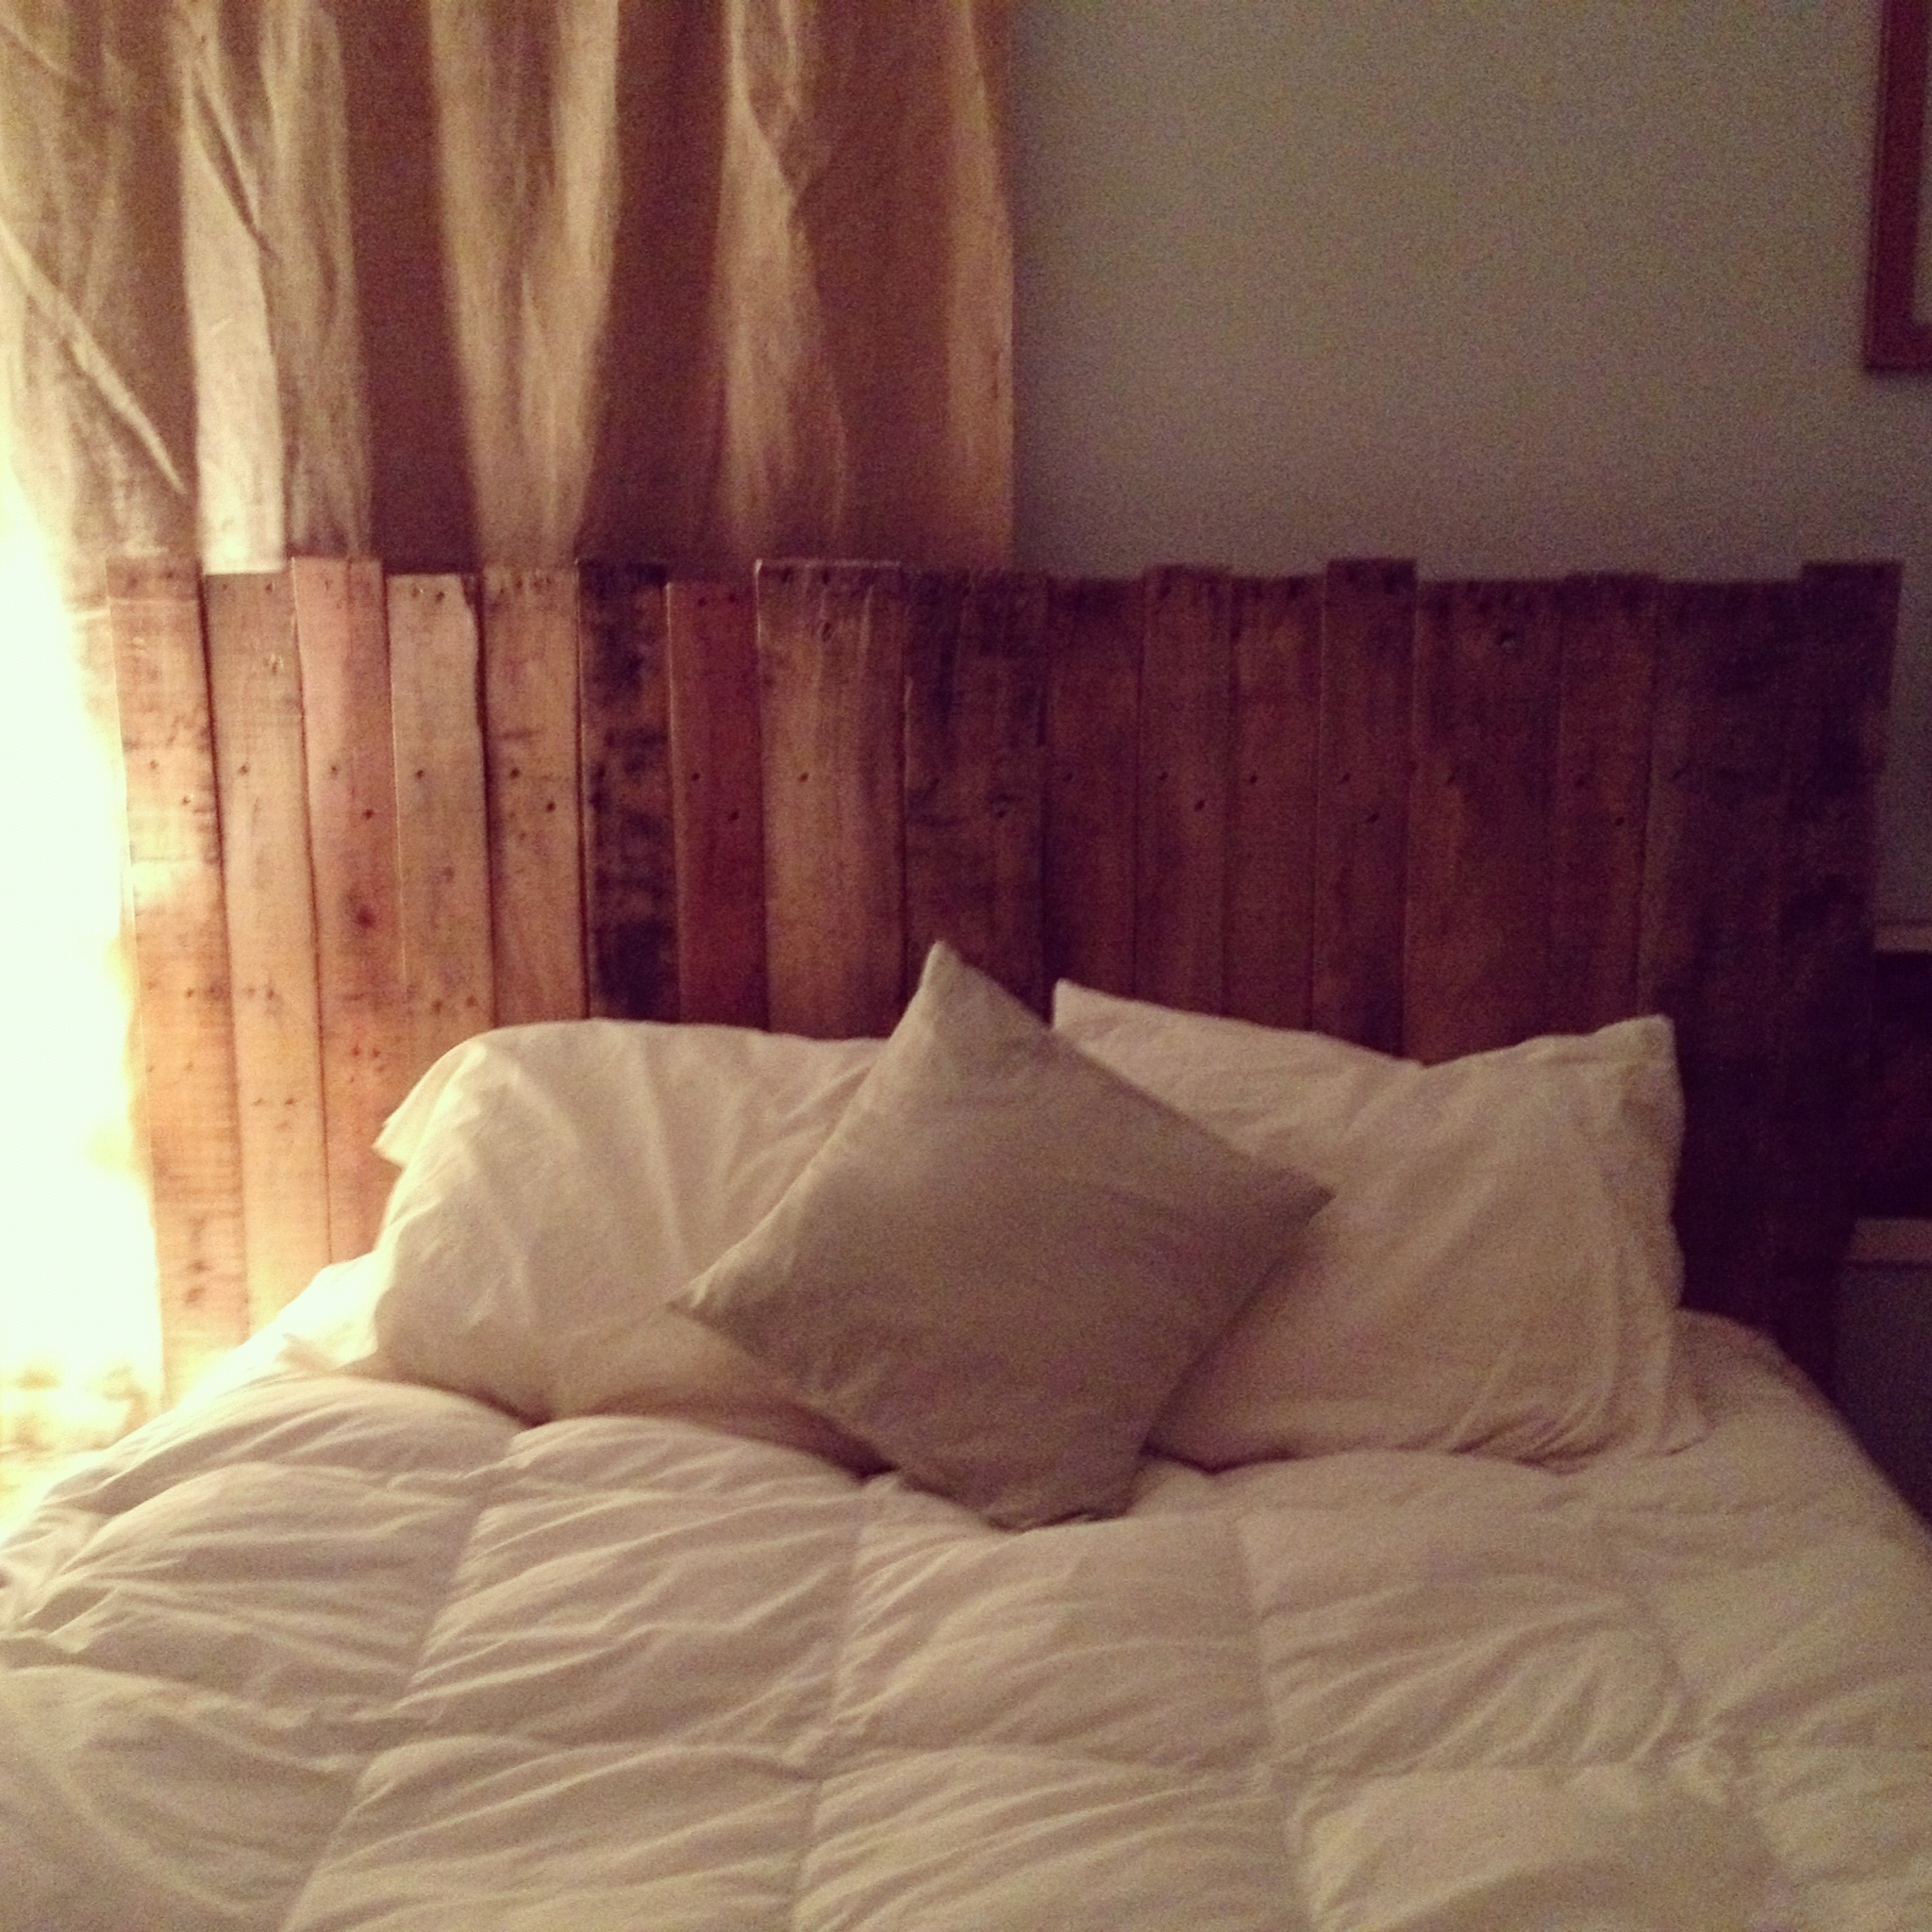 pallet bed for ideas cool color sale bedroom photo thats headboard headboards upcycling queen a pictures wondrous